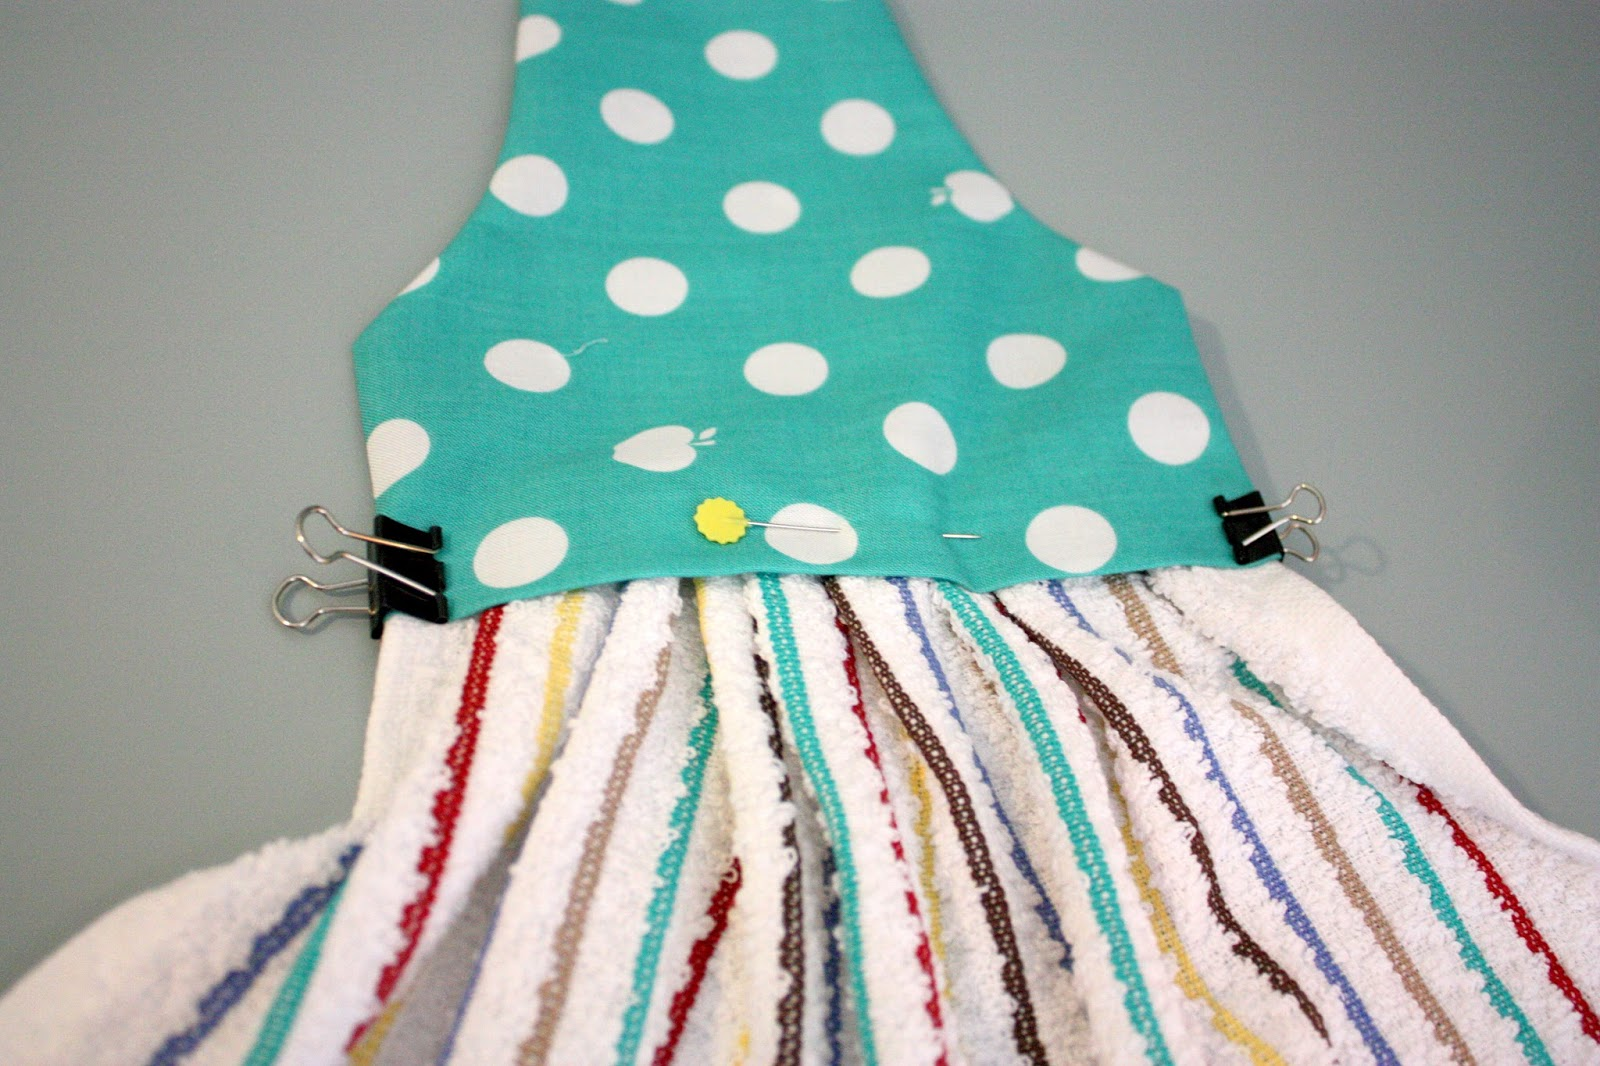 Tutorial: How to Make a Kitchen Towel with Snaps